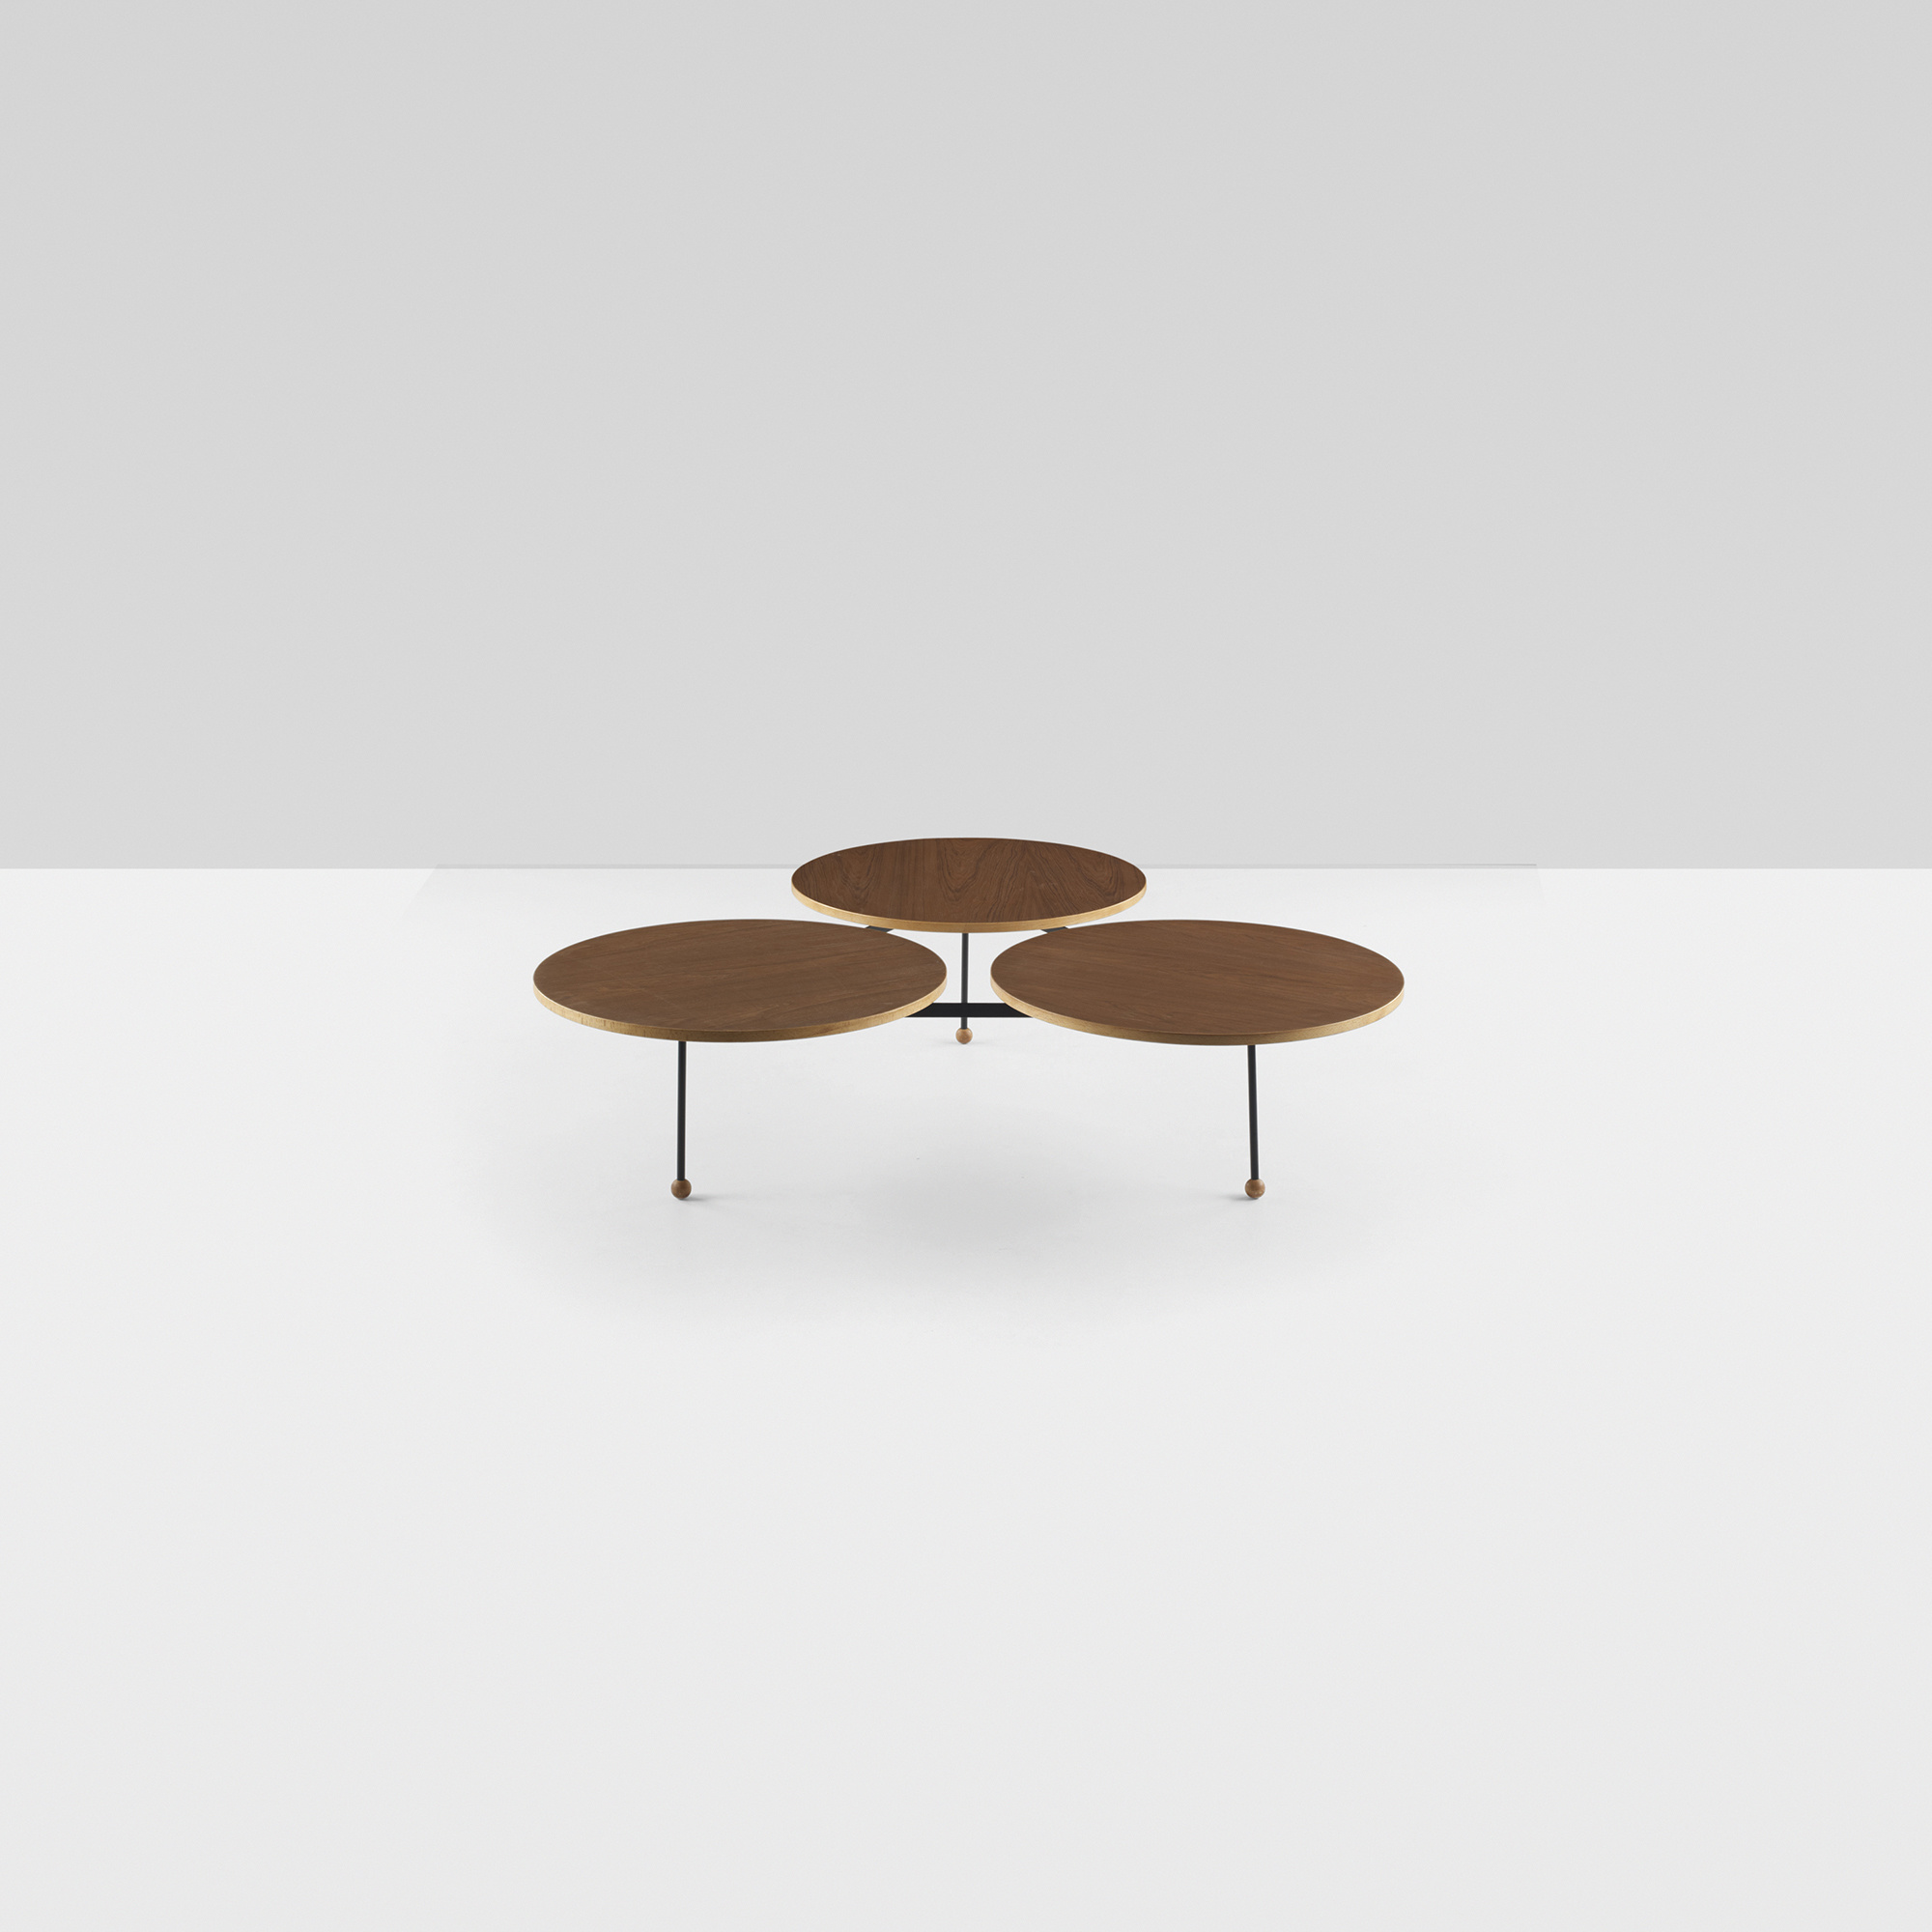 Astonishing 261 Greta Magnusson Grossman Rare Coffee Table Important Gmtry Best Dining Table And Chair Ideas Images Gmtryco